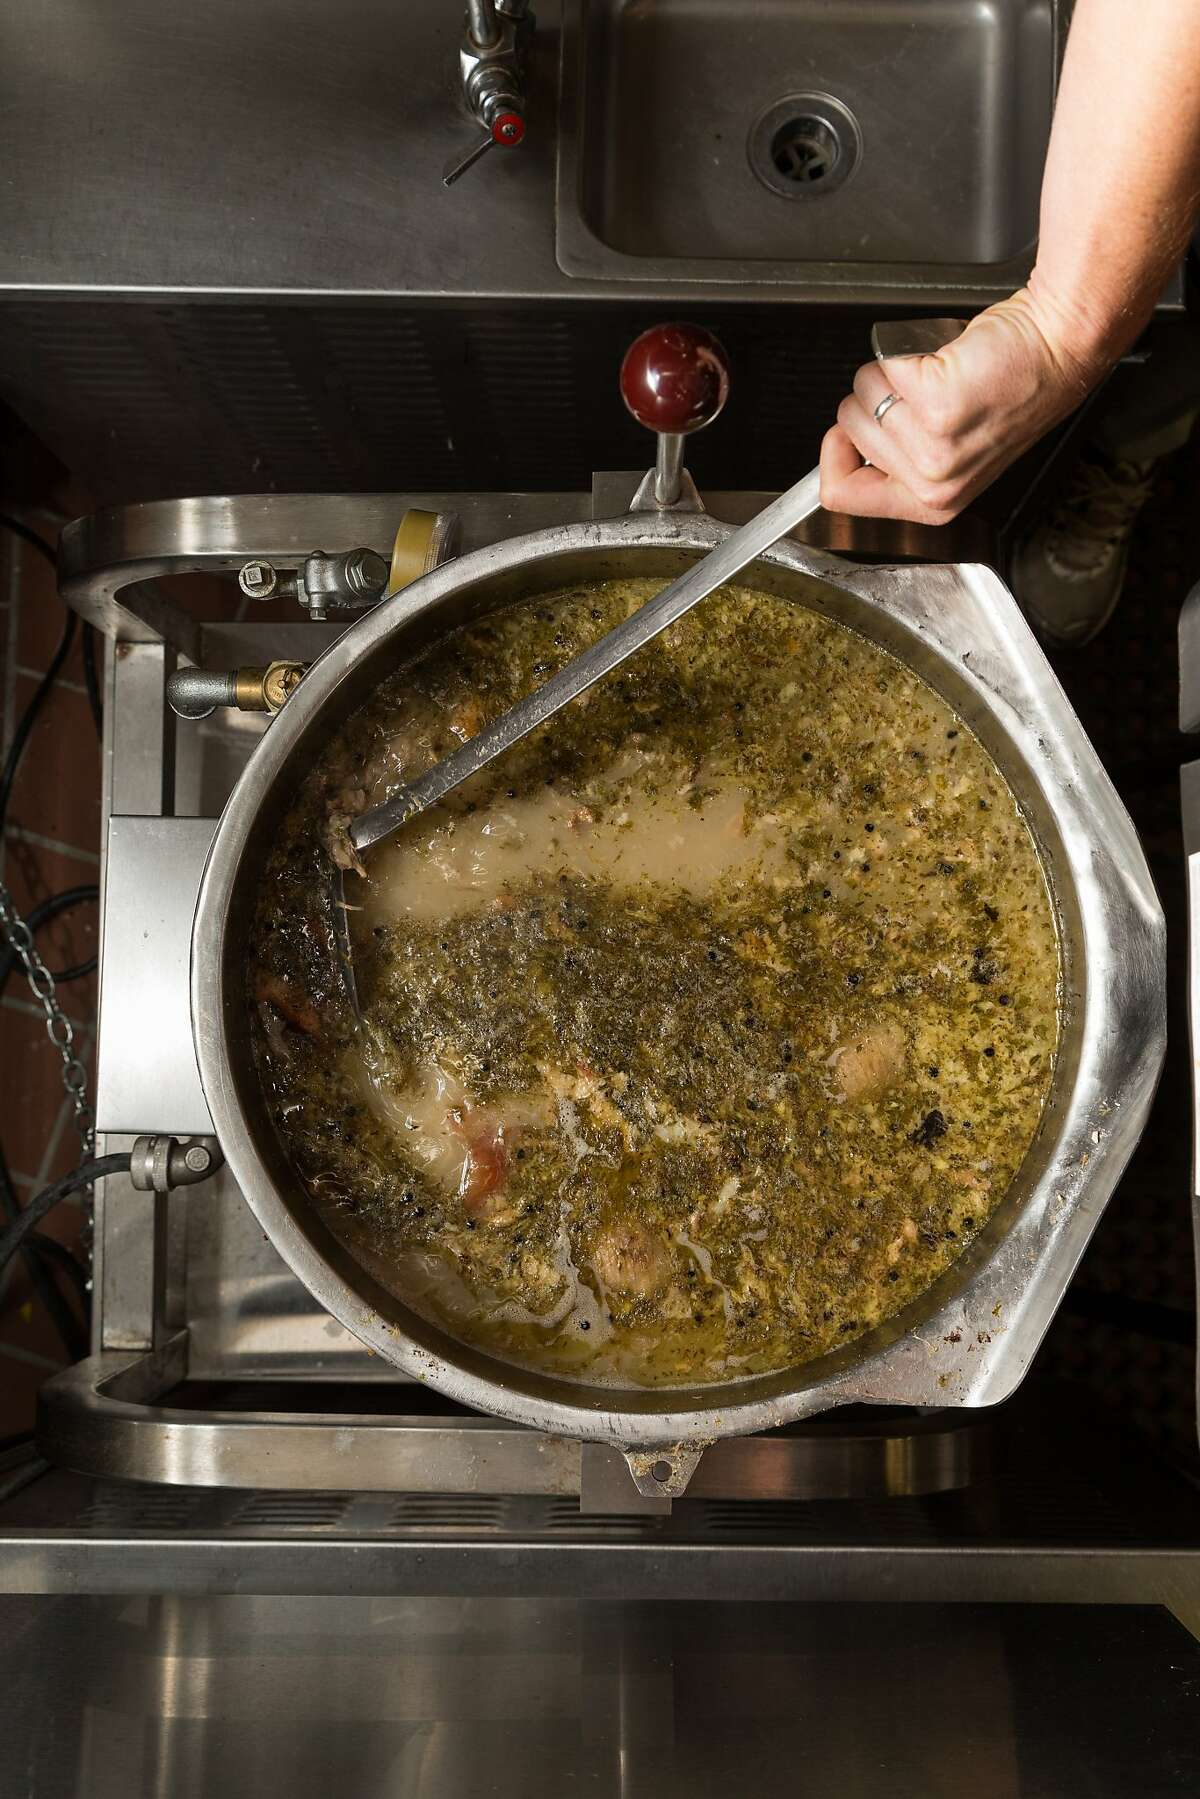 A pot of Kitchen Witch bone broth cooks for about 24 hours before being strained and bottled in Watsonville, Calif., Friday, April 3, 2015.